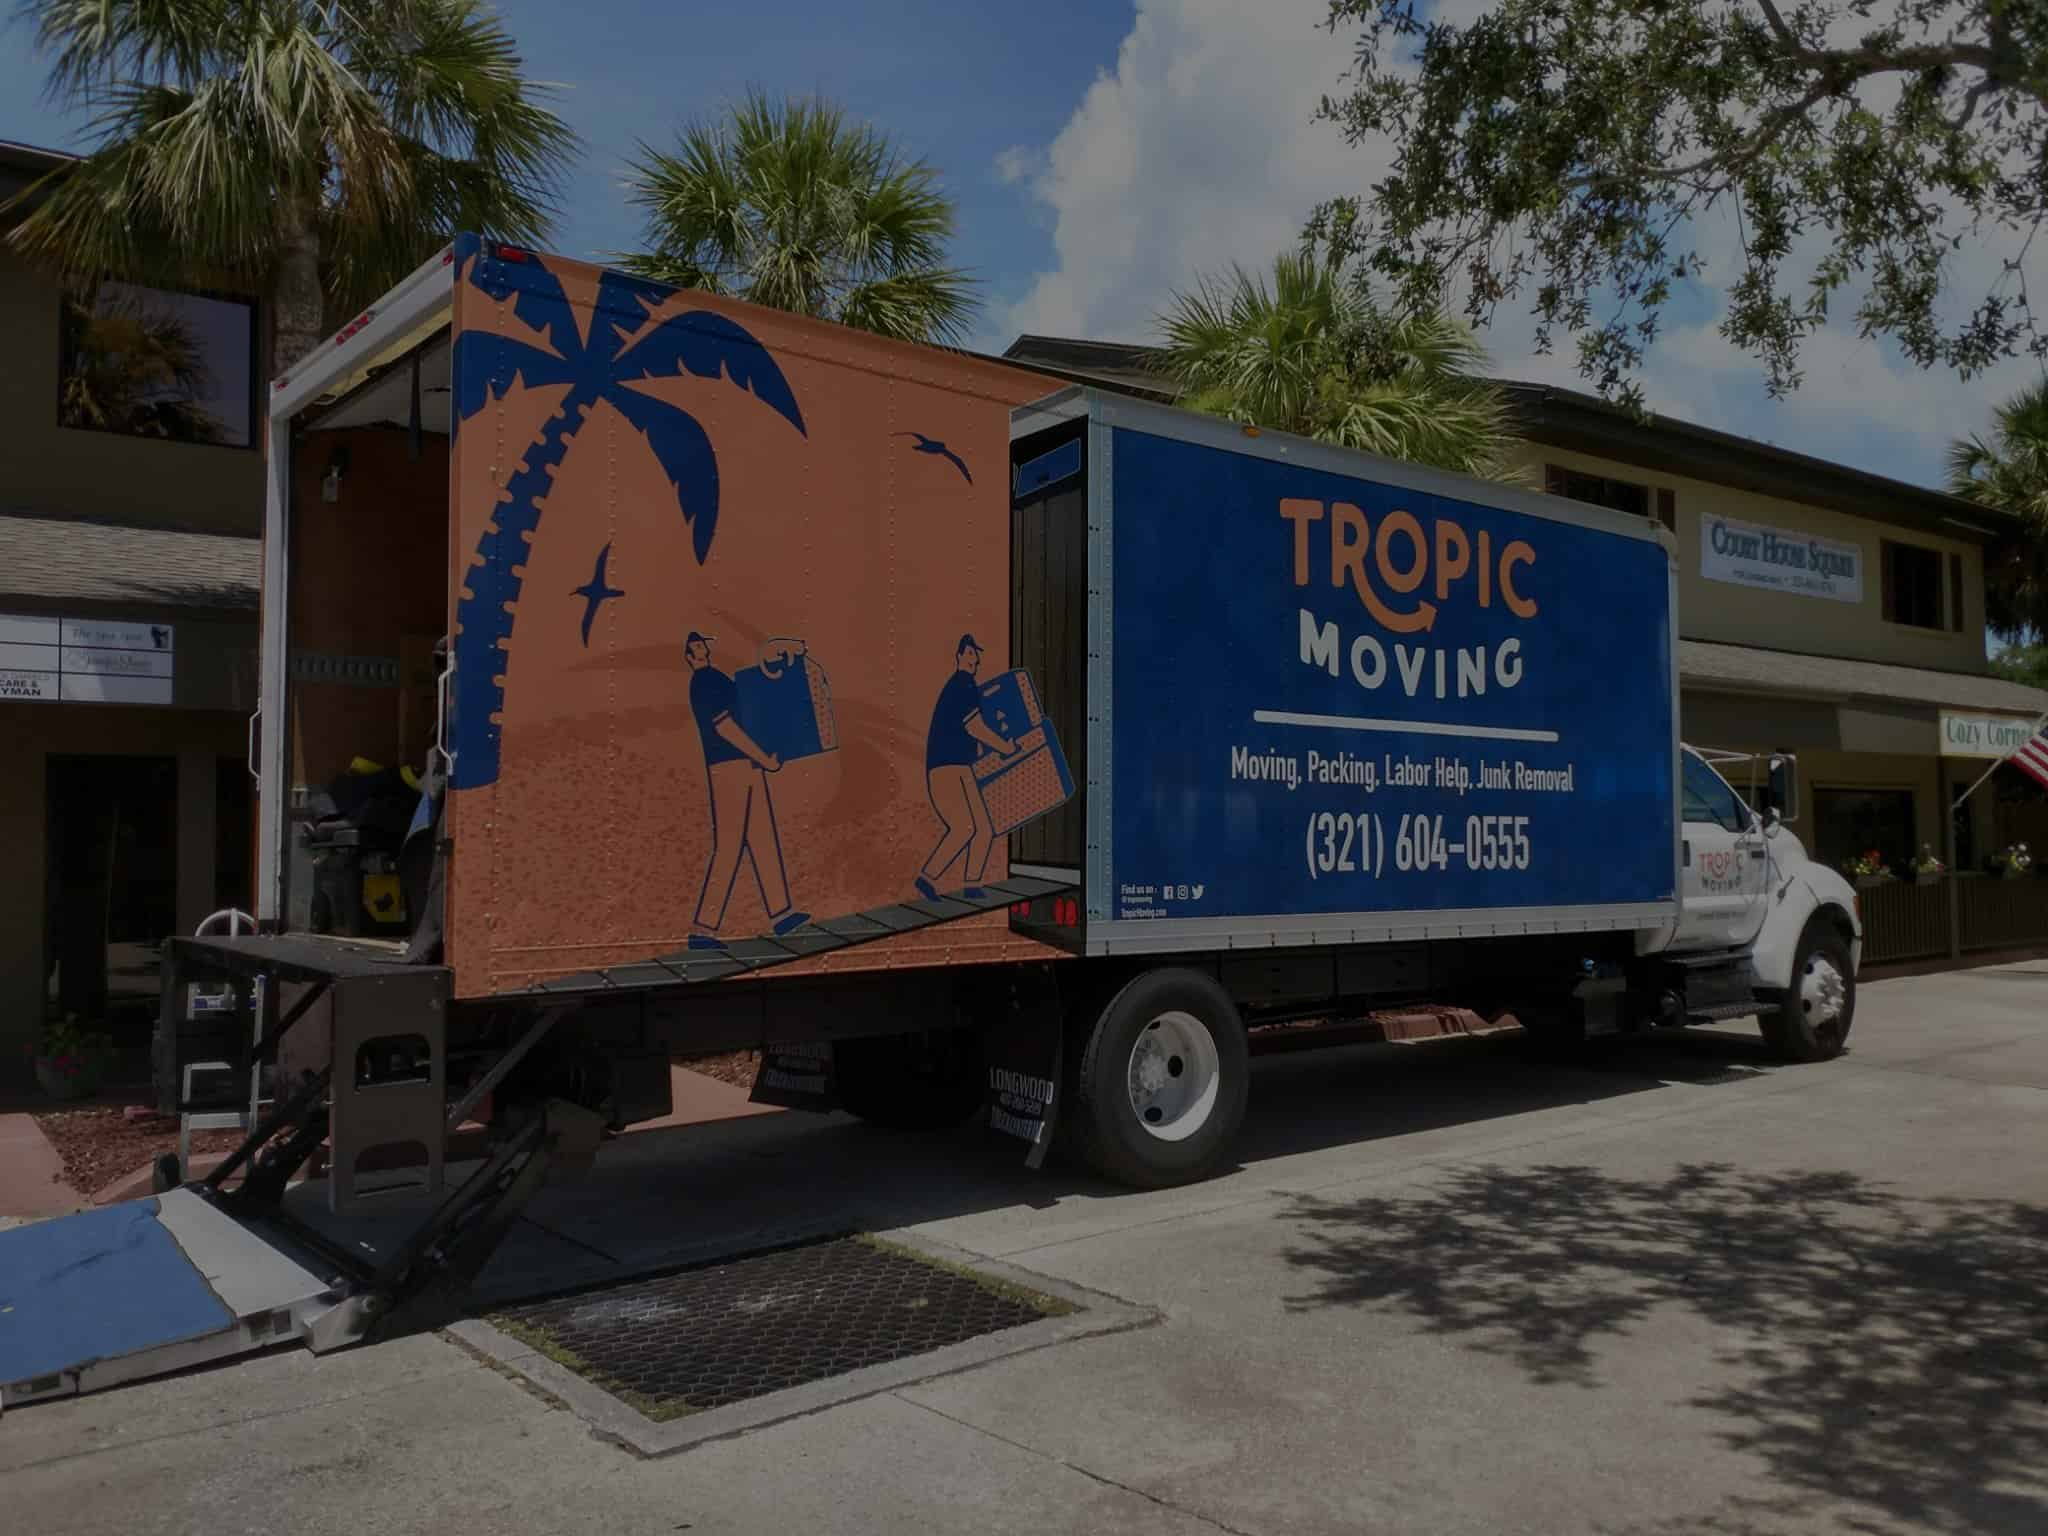 Tropic moving truck in front of office